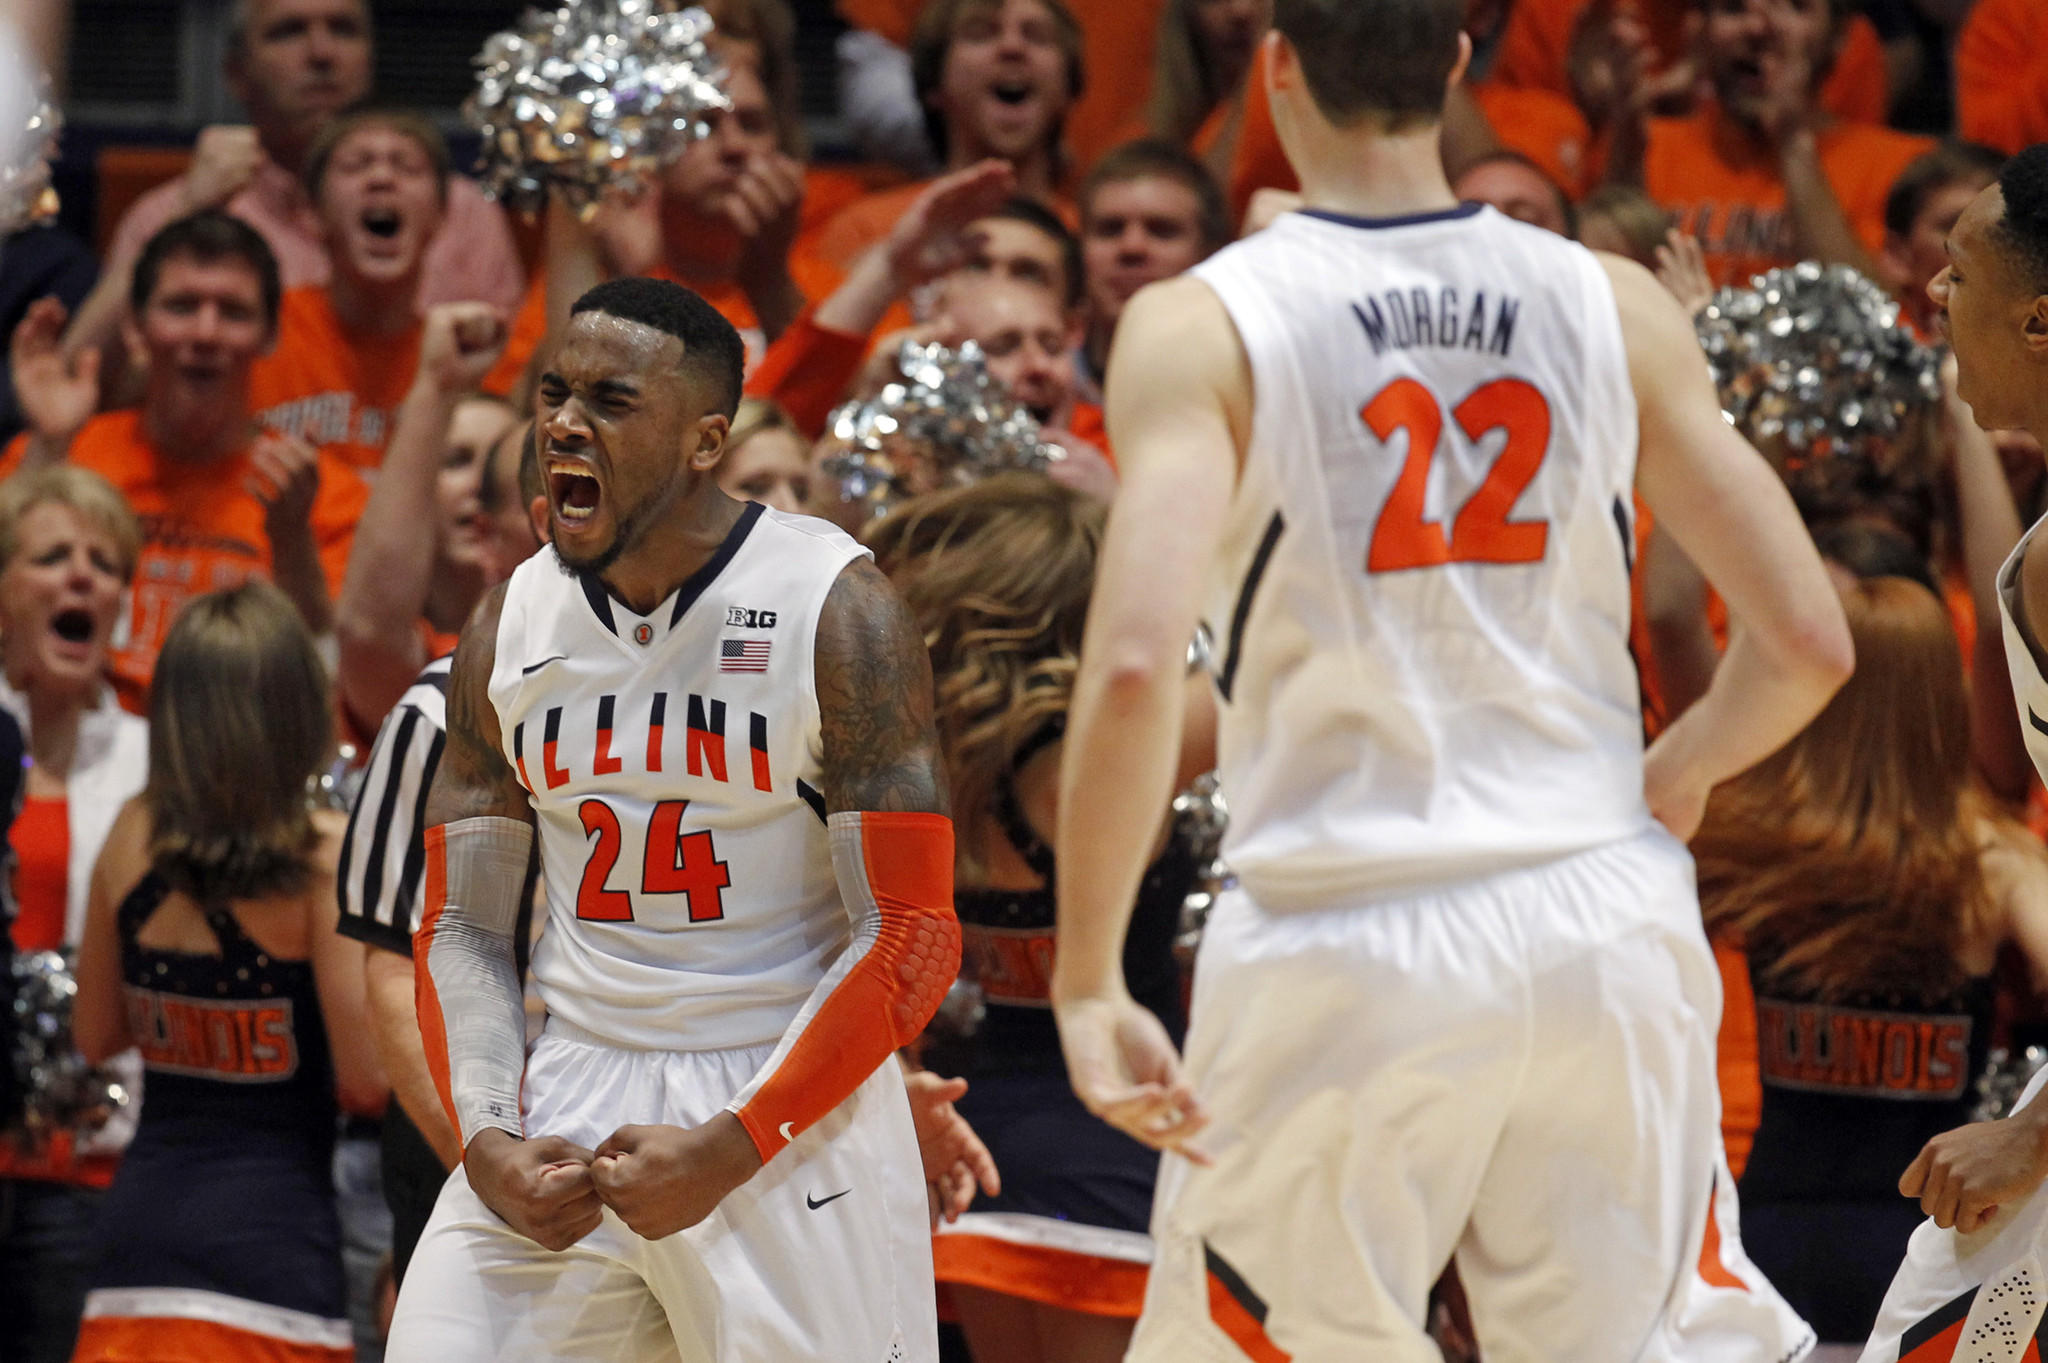 Illinois Fighting Illini guard Rayvonte Rice (24) celebrates a steal and basket against the Indiana Hoosiers in the first half Tuesday.